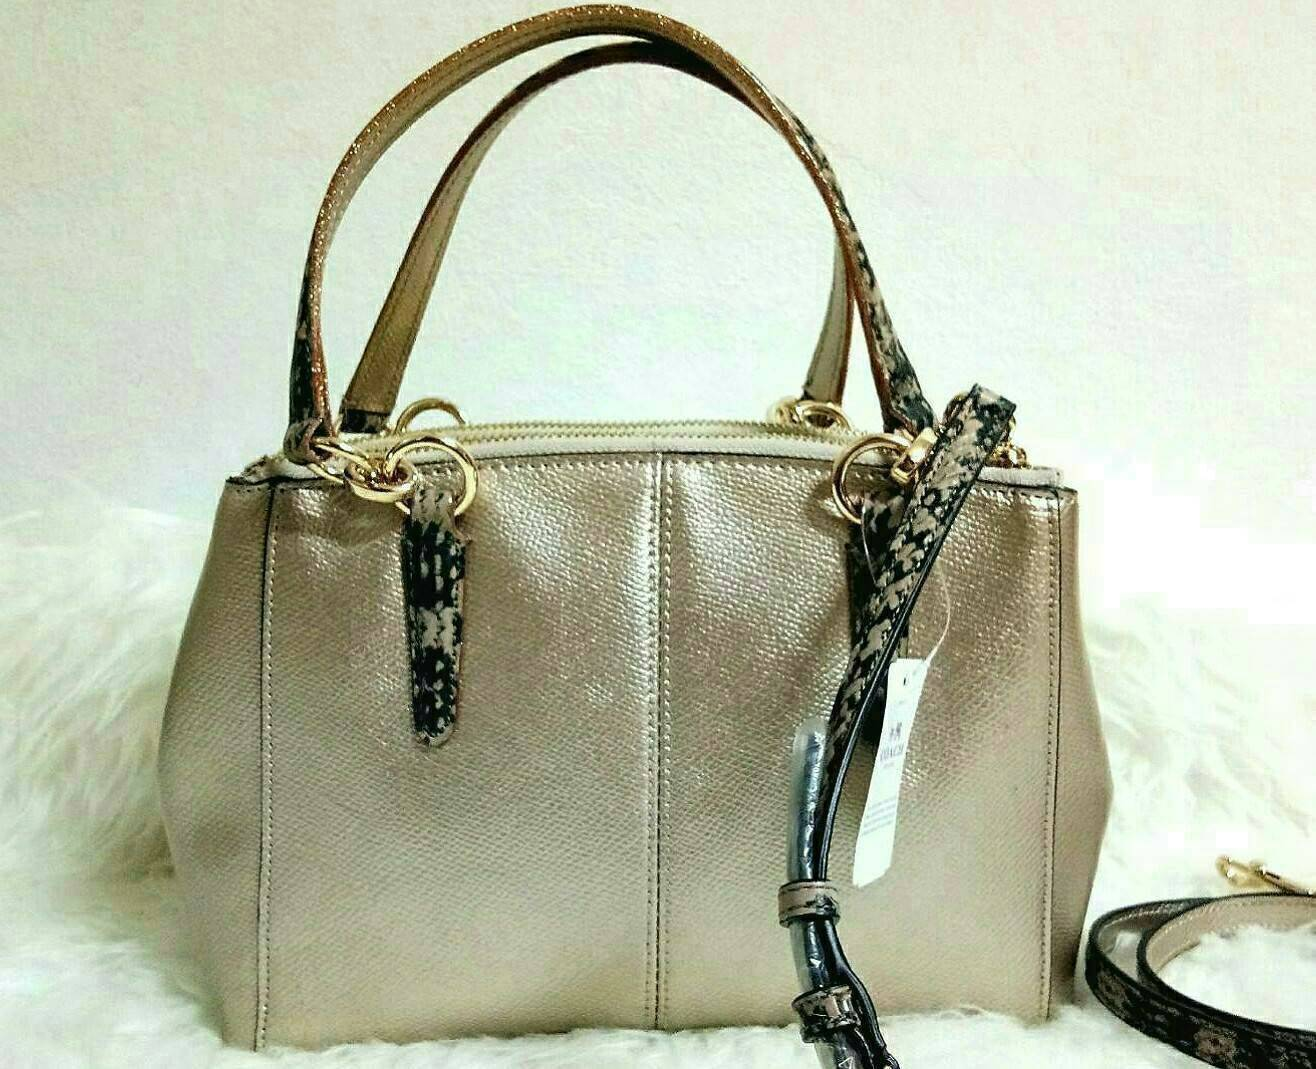 Coach F55515 MINI CHRISTIE CARRYALL IN METALLIC LEATHER WITH EXOTIC TRIM แท้